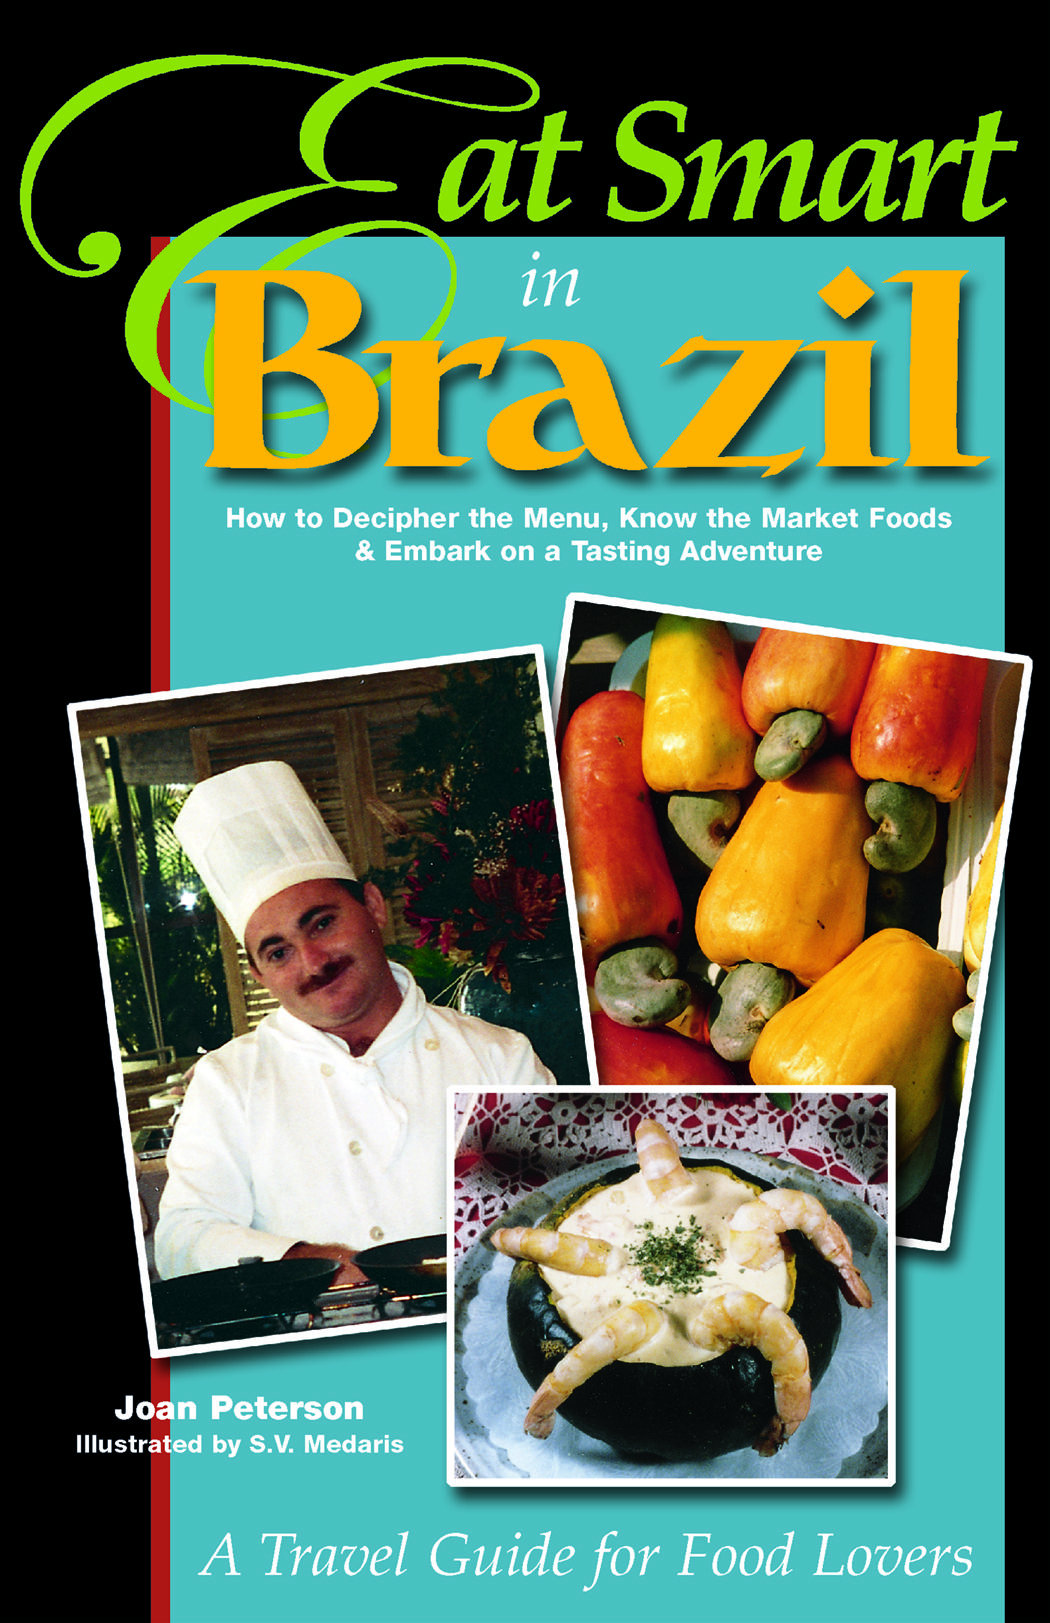 Eat smart in brazil how to decipher the menu know the market foods eat smart in brazil how to decipher the menu know the market foods forumfinder Images